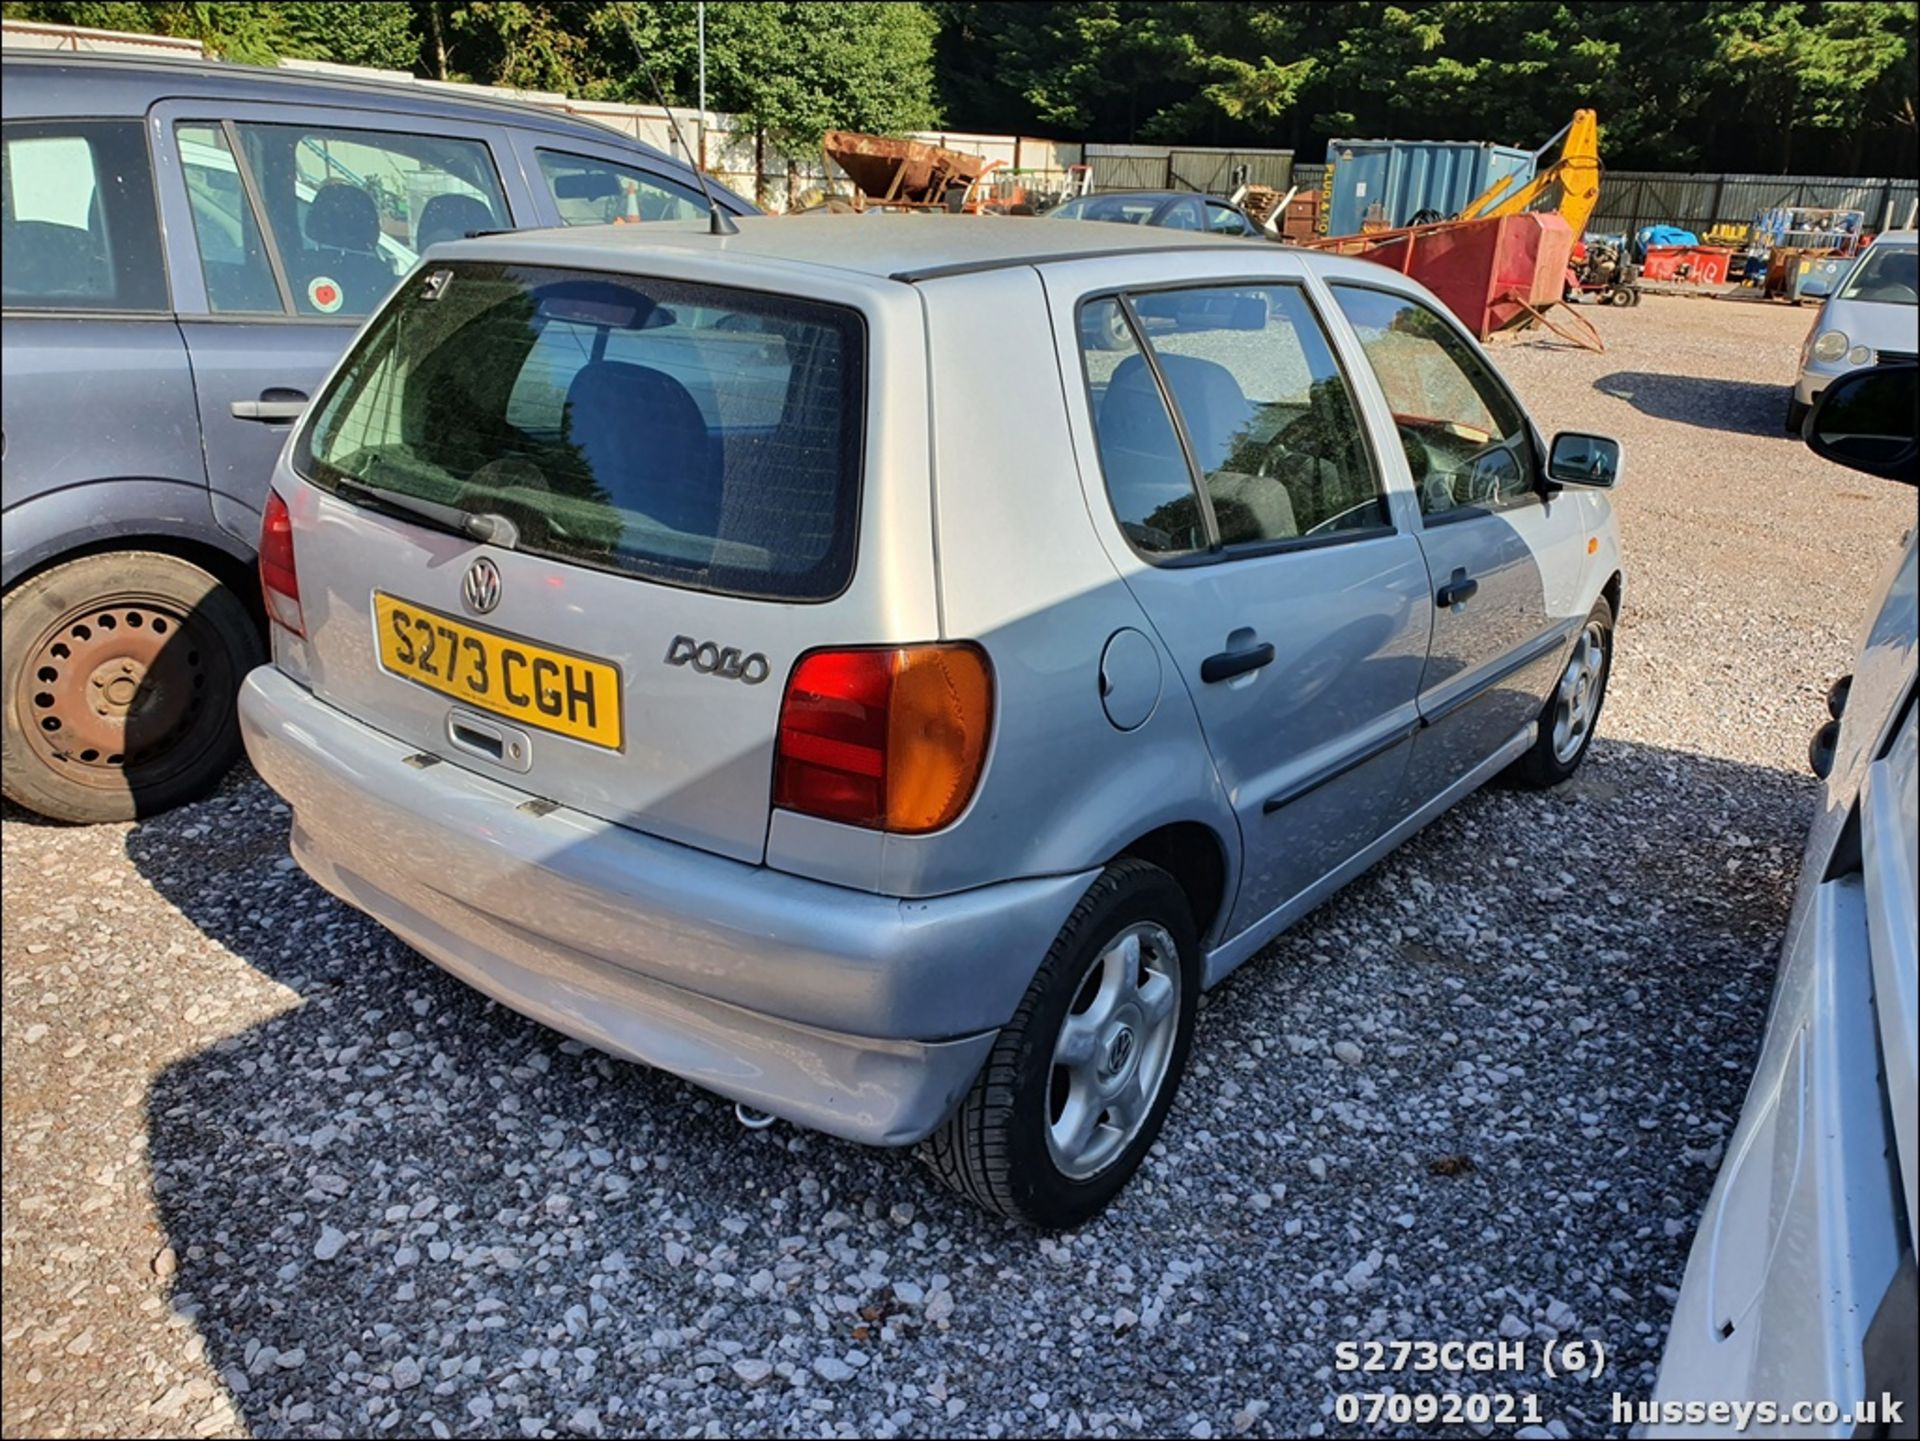 1998 VOLKSWAGEN POLO 1.6 GL AUTO - 1598cc 5dr Hatchback (Silver, 113k) - Image 6 of 13